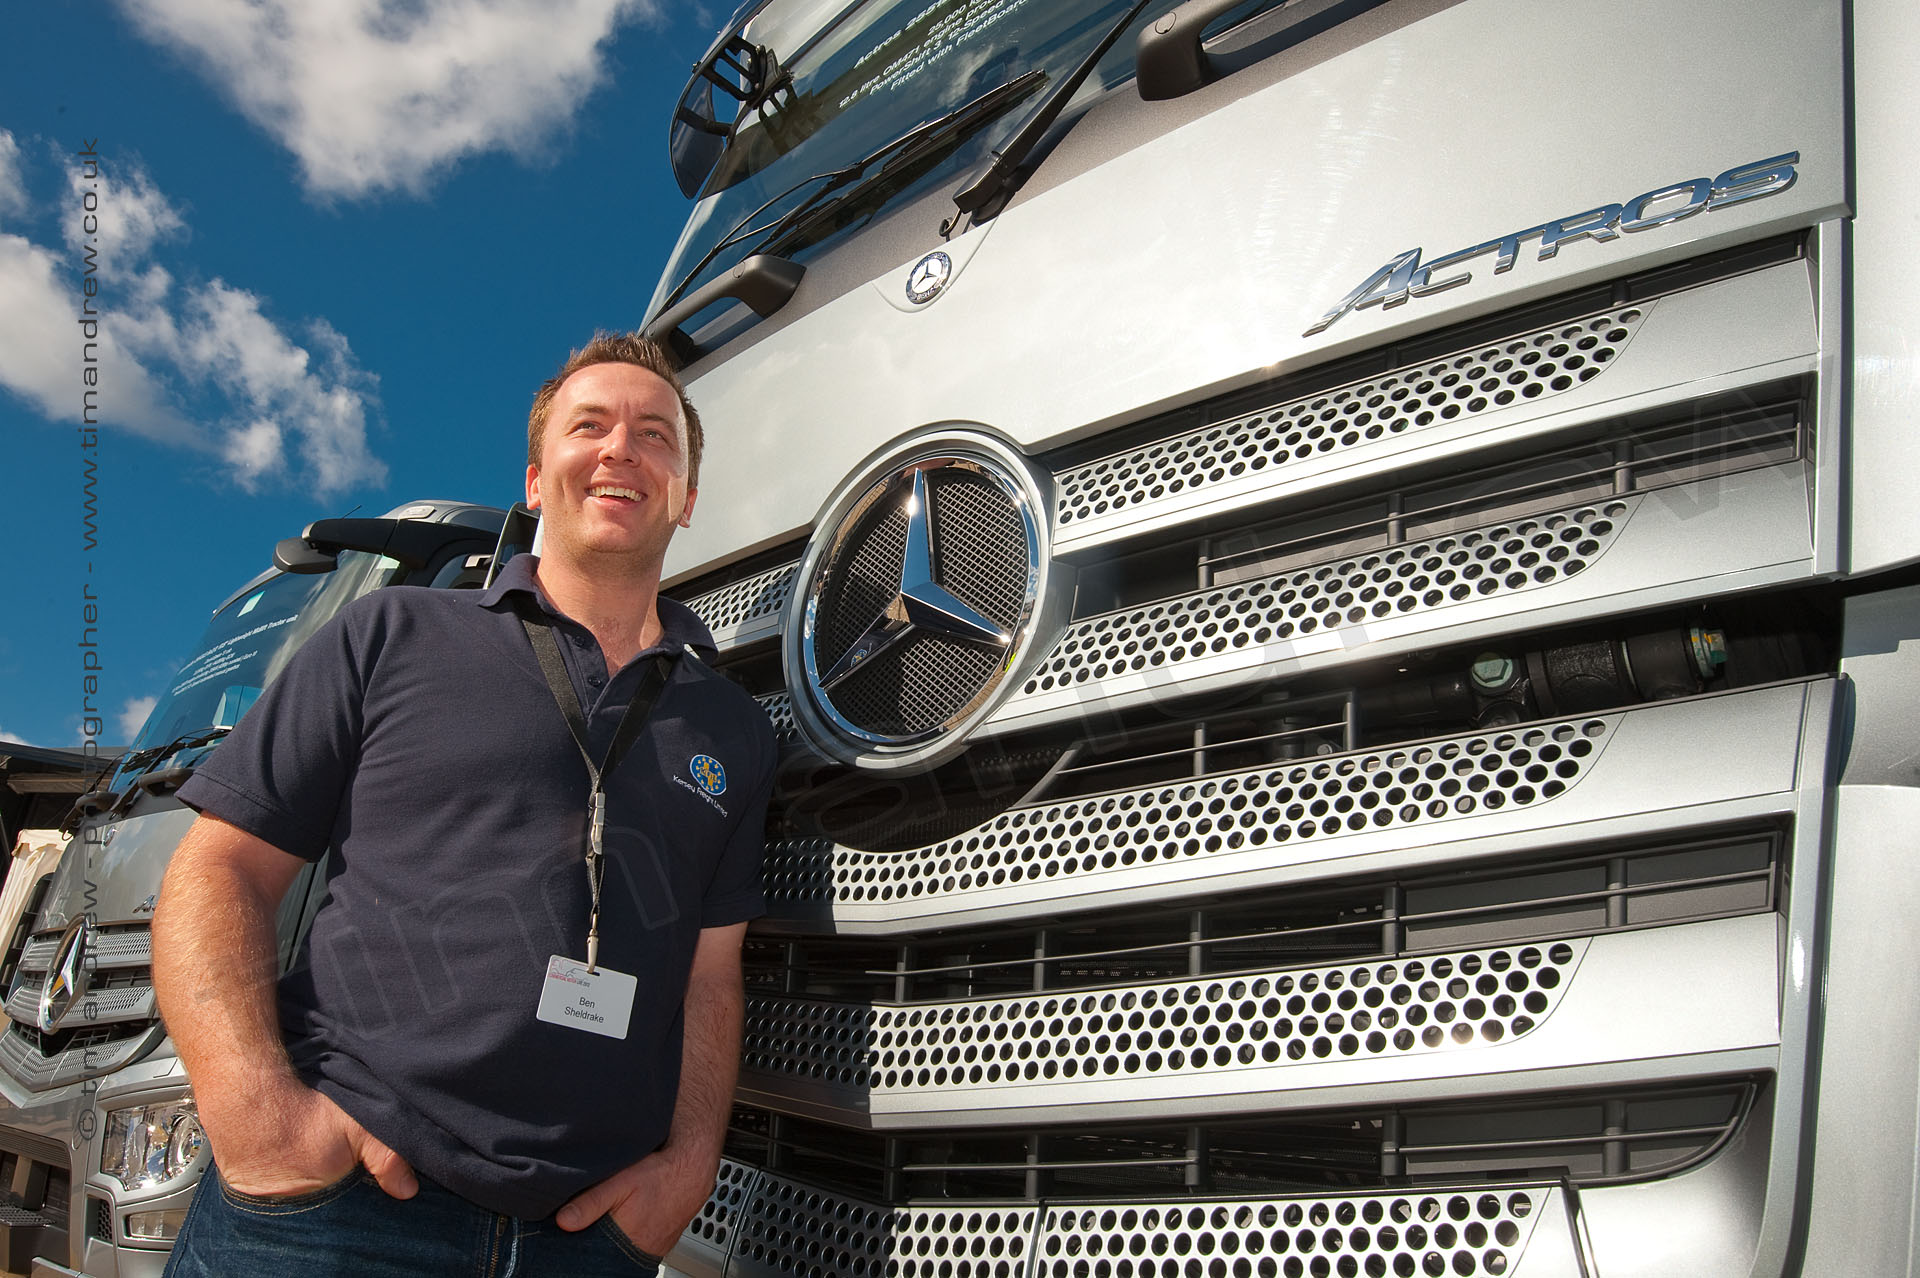 Ben Sheldrake portrait with Mercedes Benz Actros truck